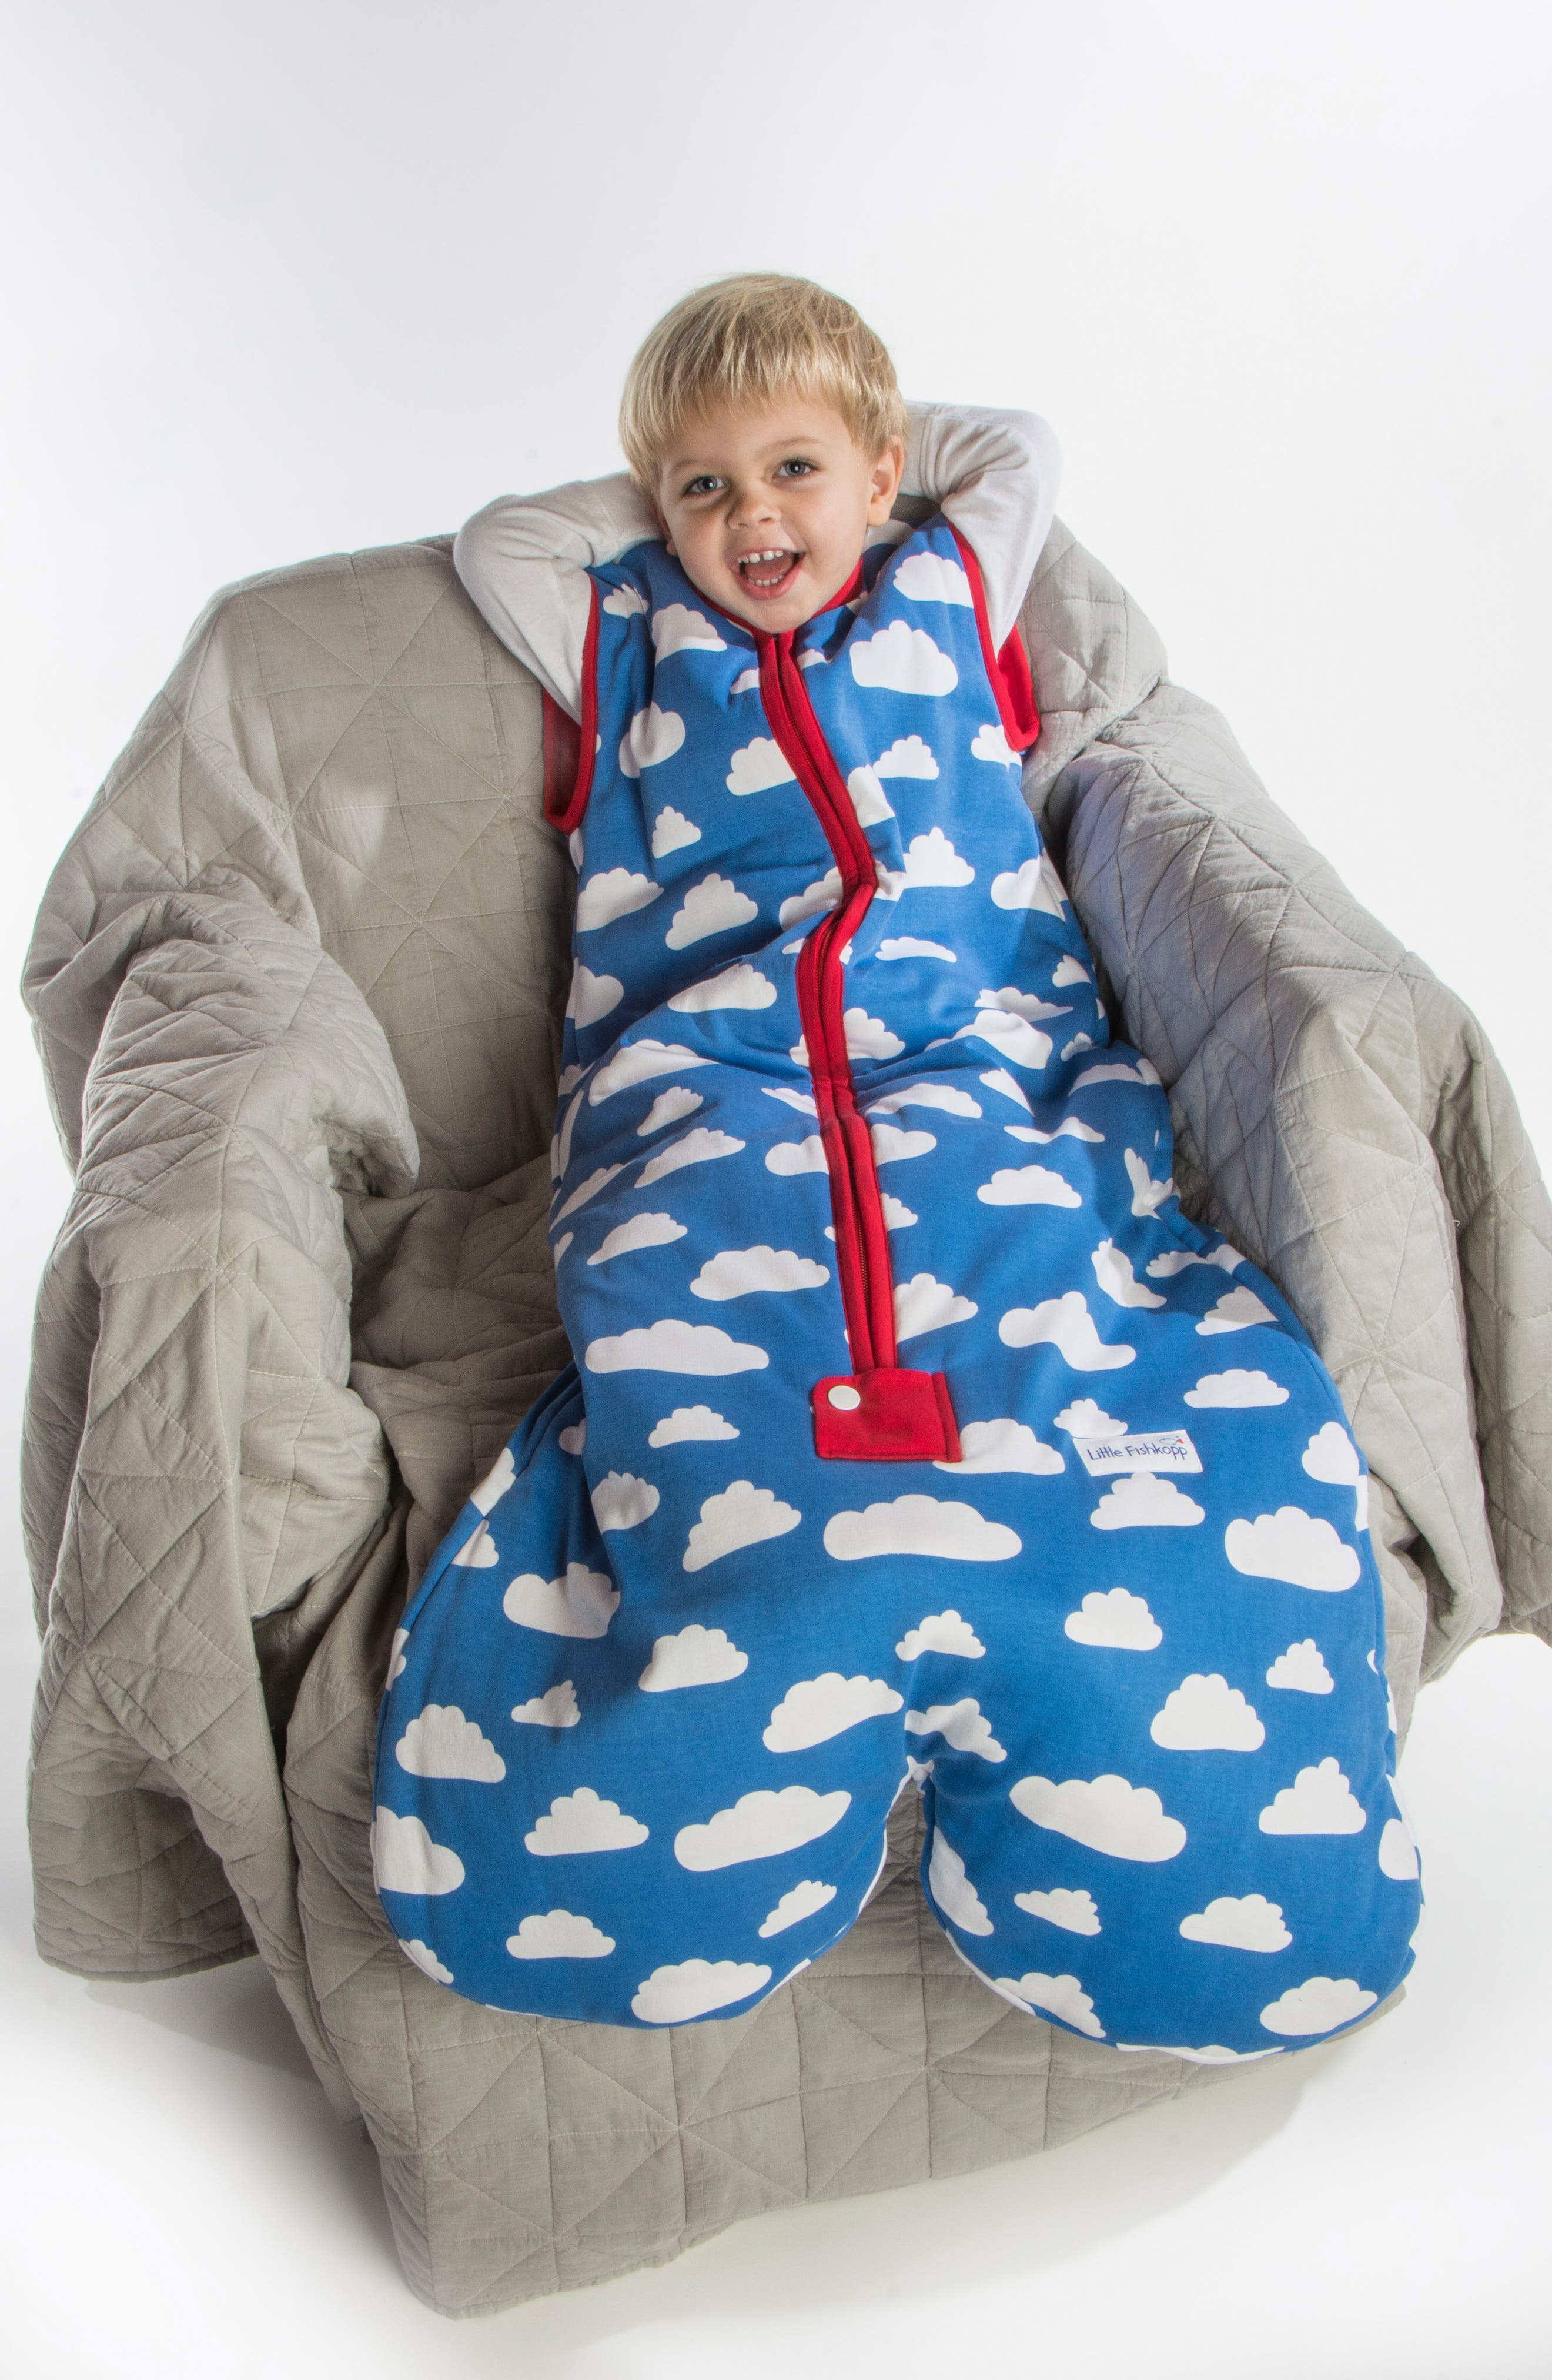 Clouds Organic Cotton Wearable Blanket,                             Alternate thumbnail 6, color,                             400